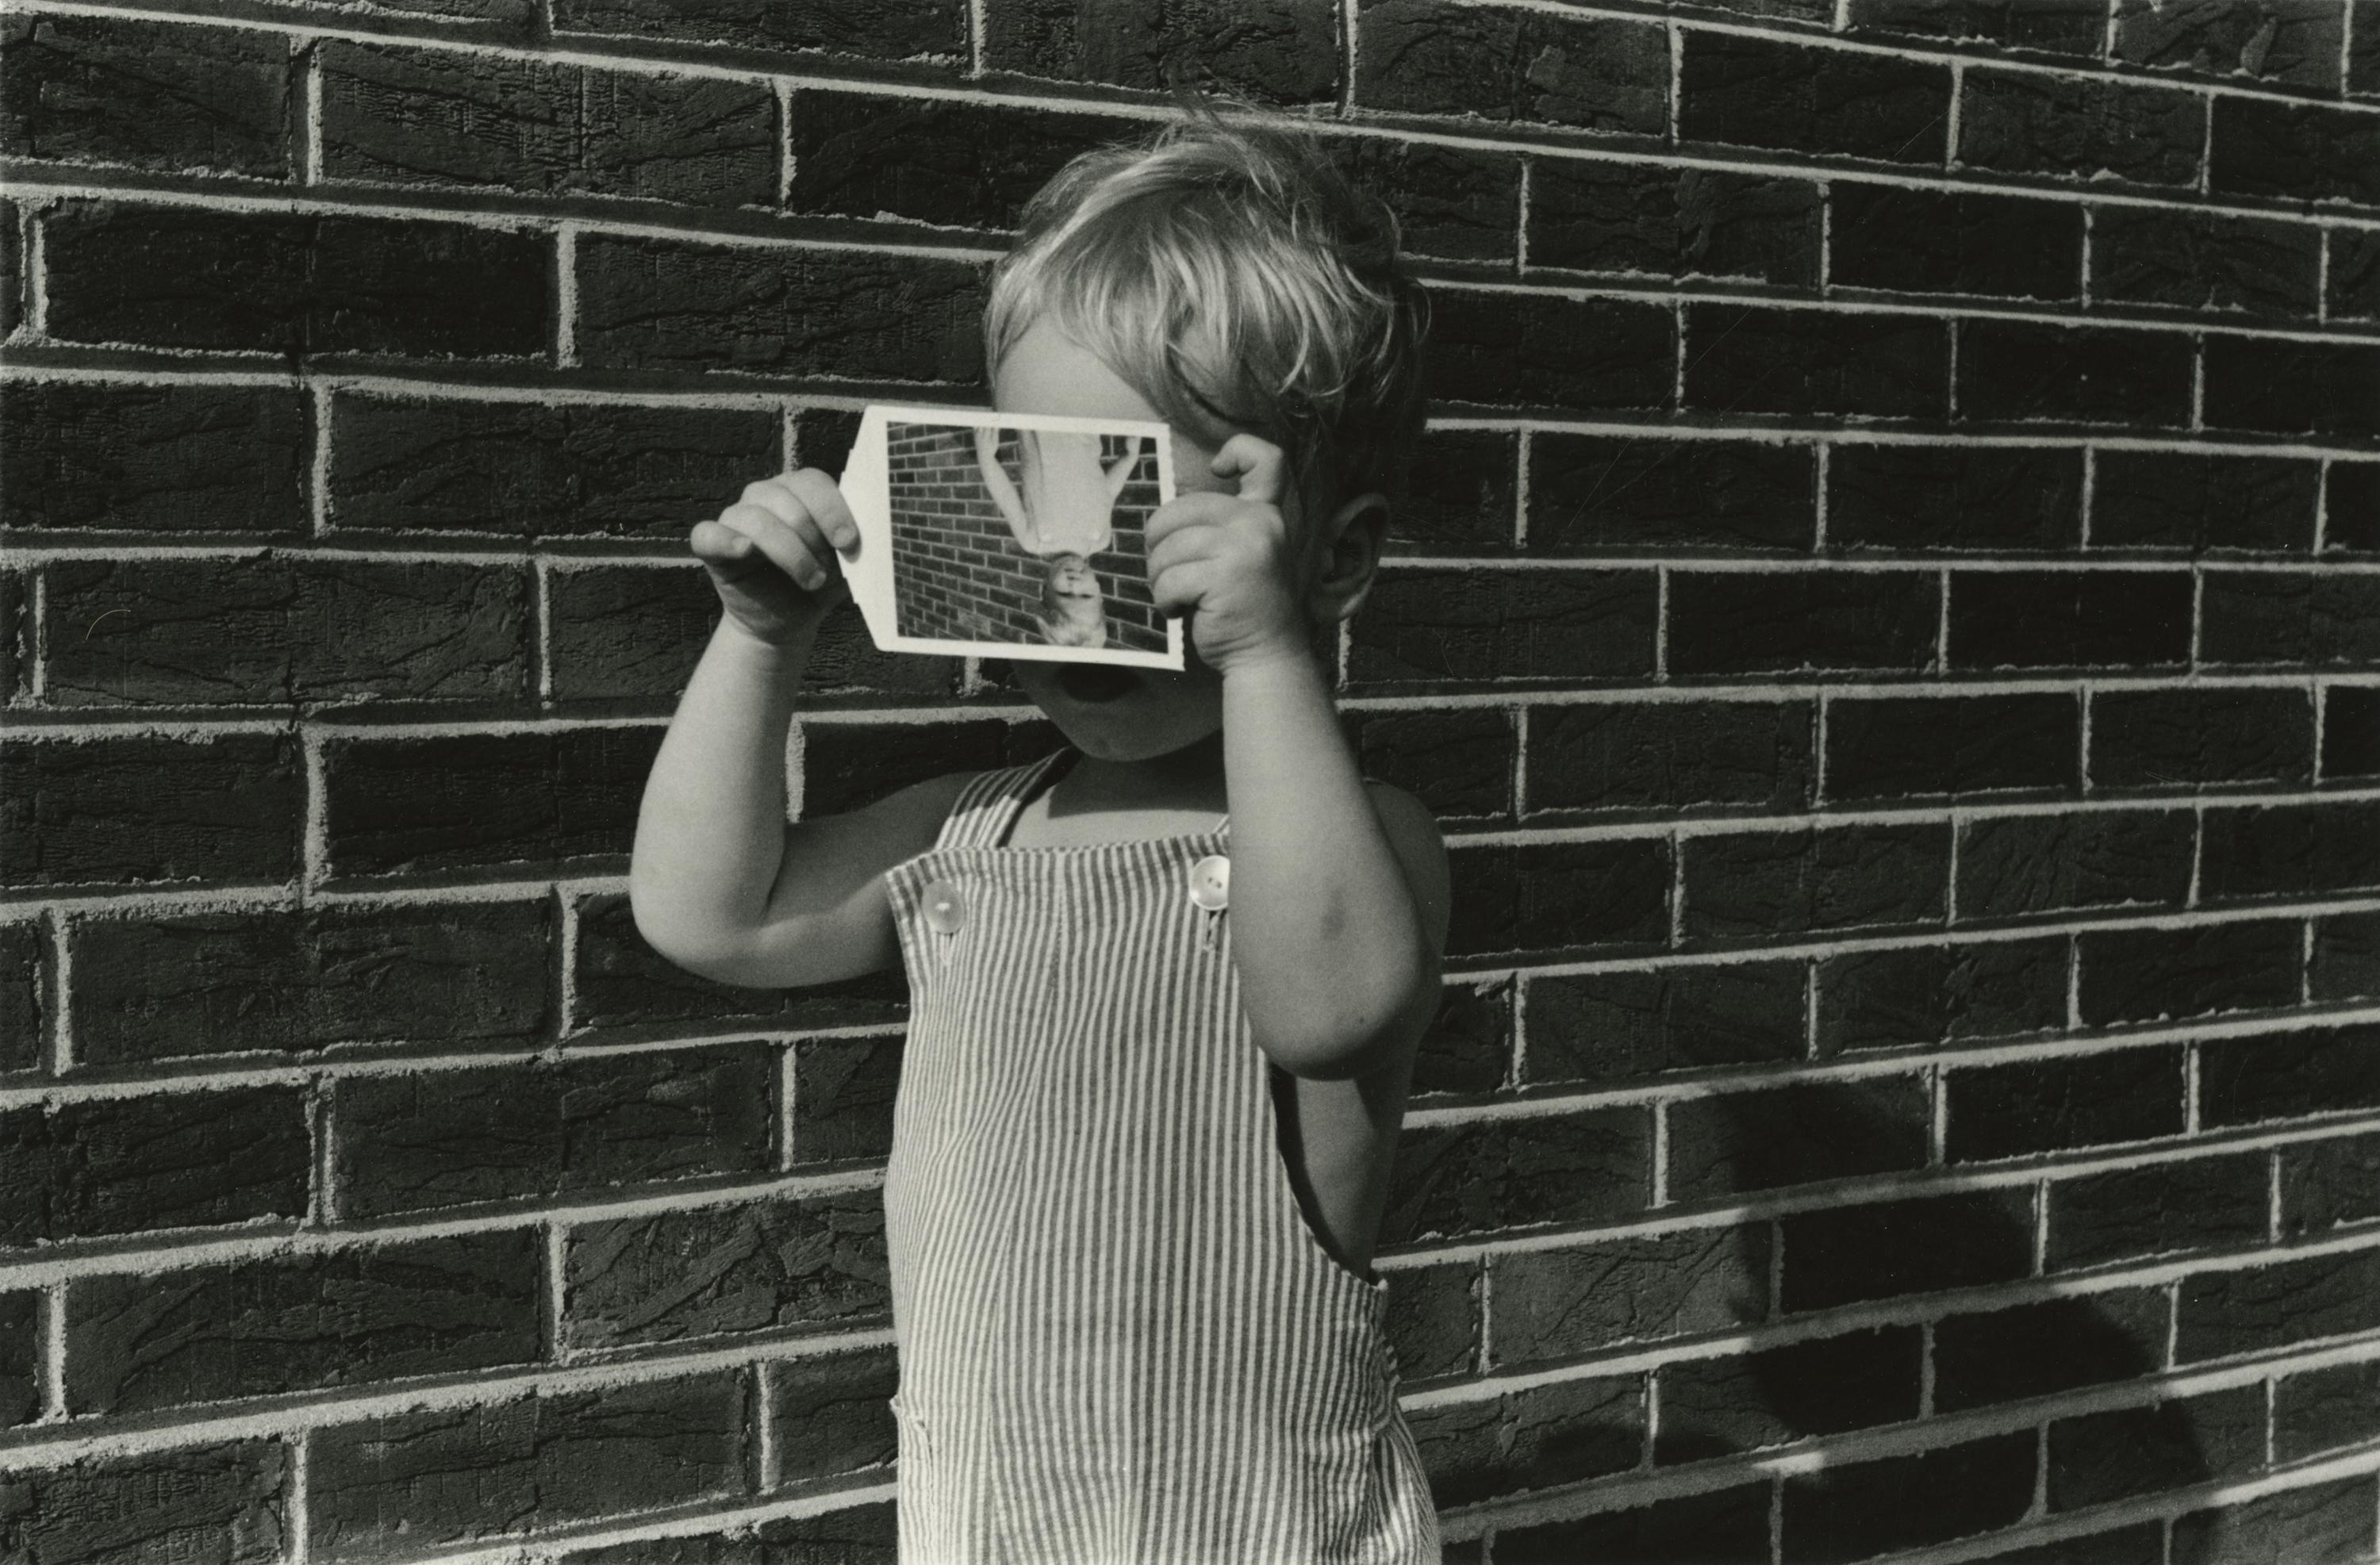 A child stands in front of a brick wall, holding in front of his face an upside-down snapshot of himself standing in front of a brick wall.